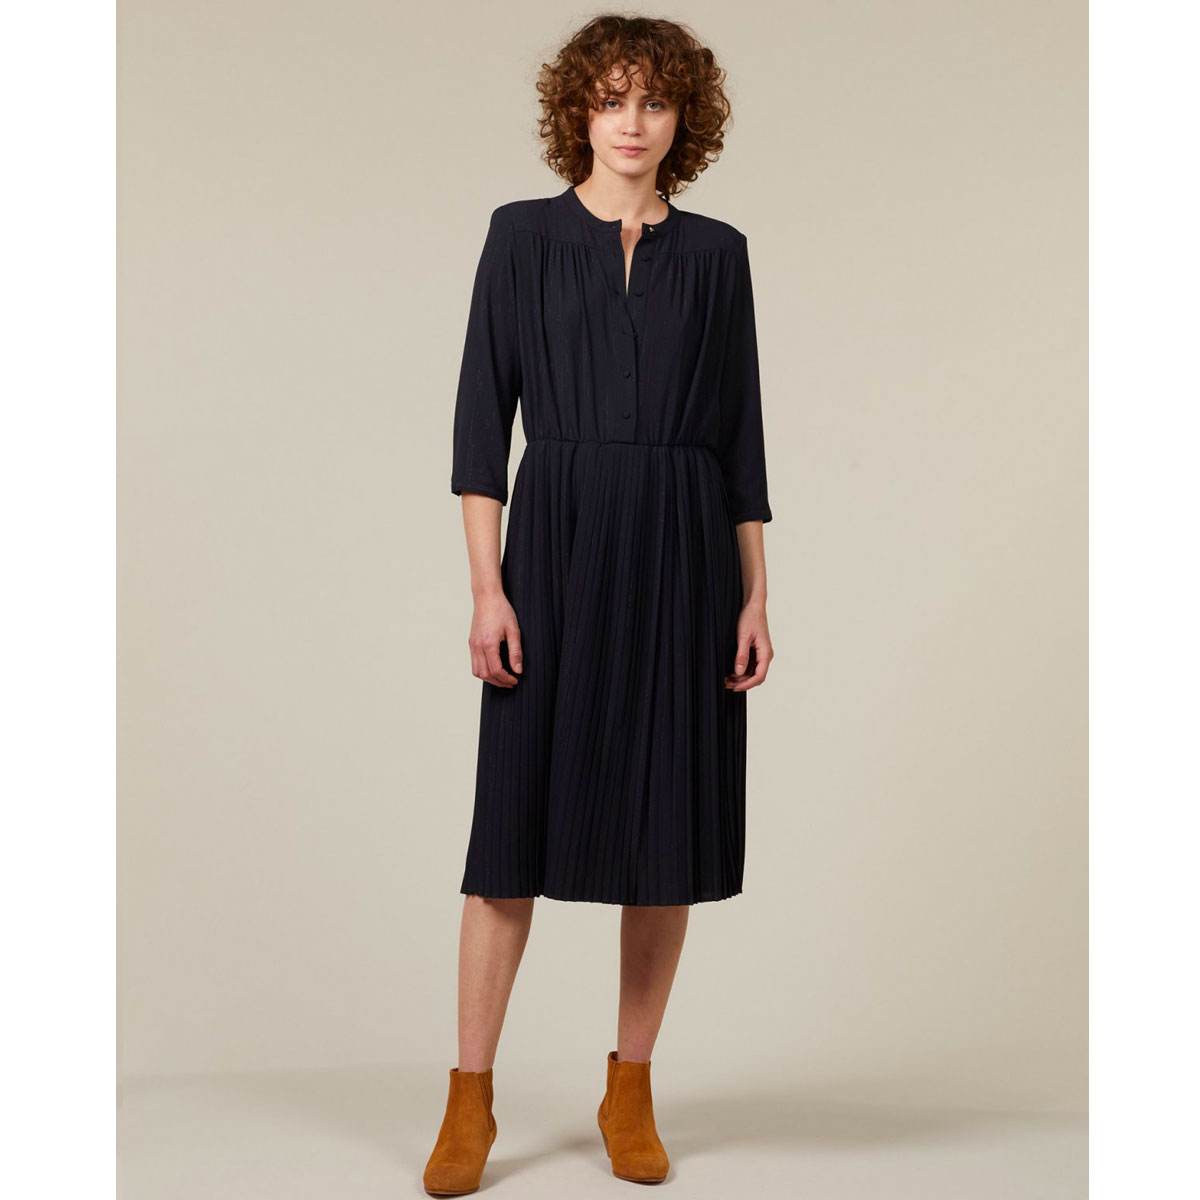 Robe ALASTORIA Dark navy